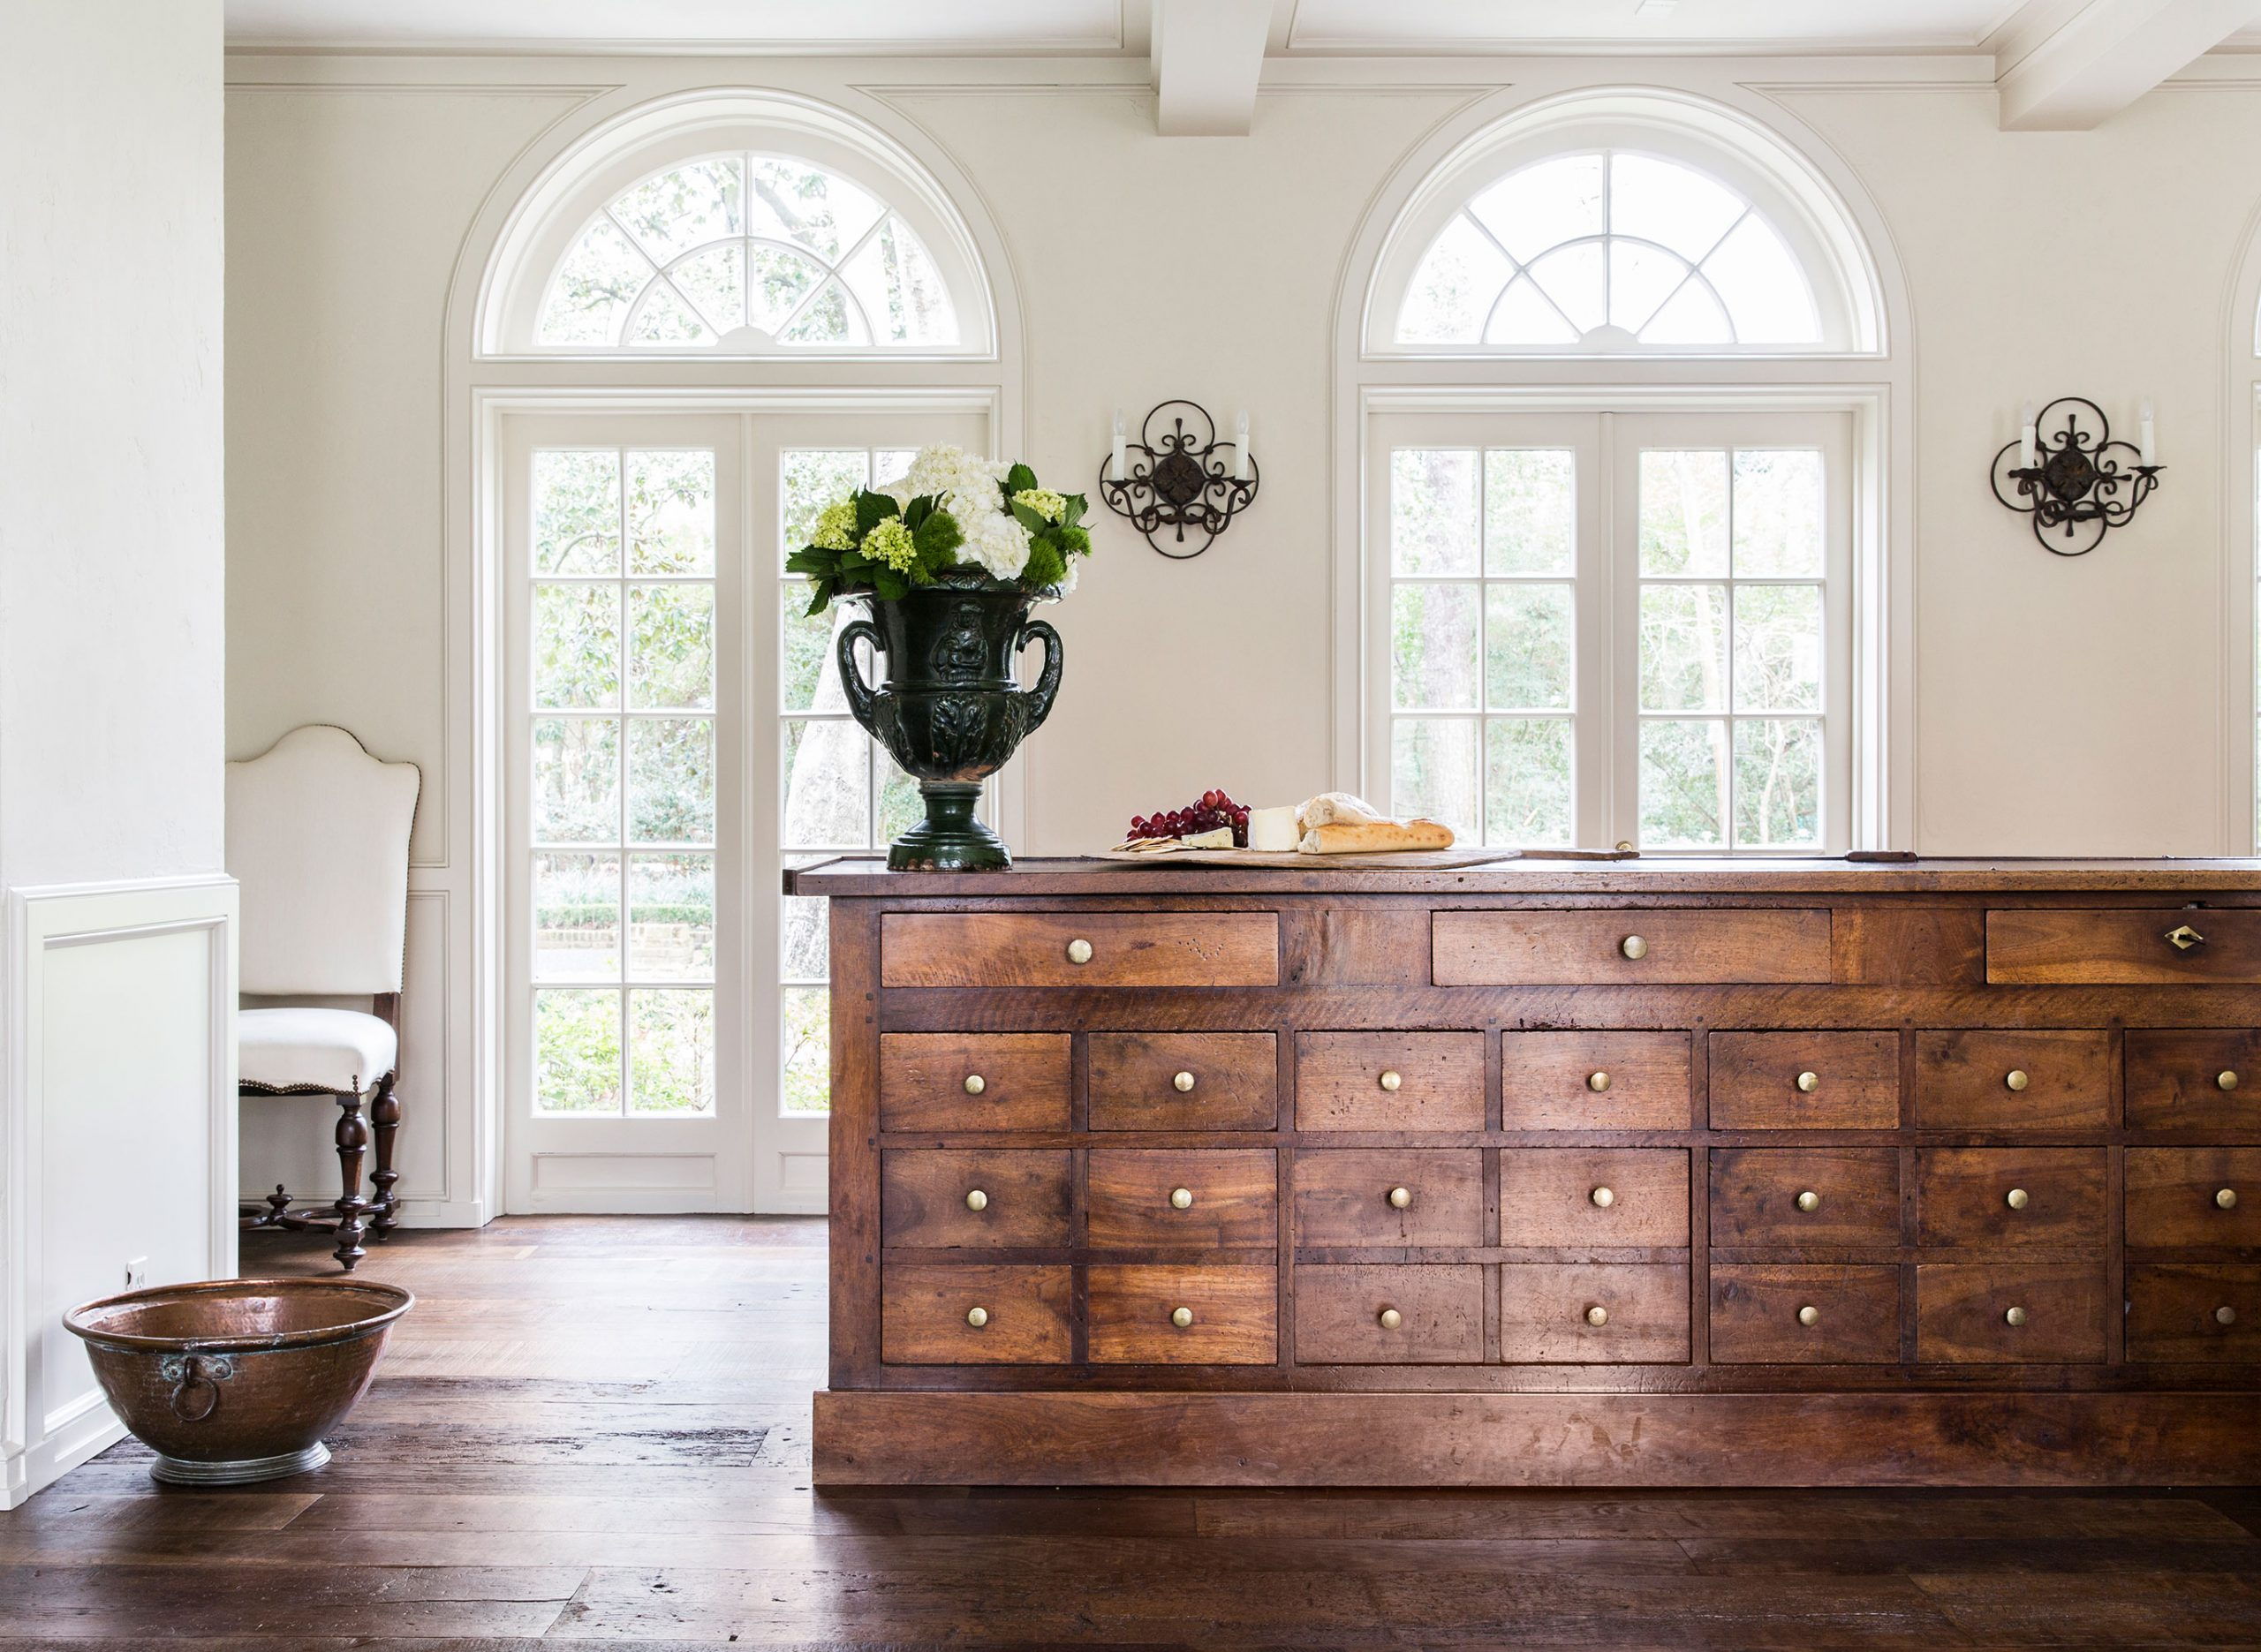 Interiors Photography - Julie Soefer Photography